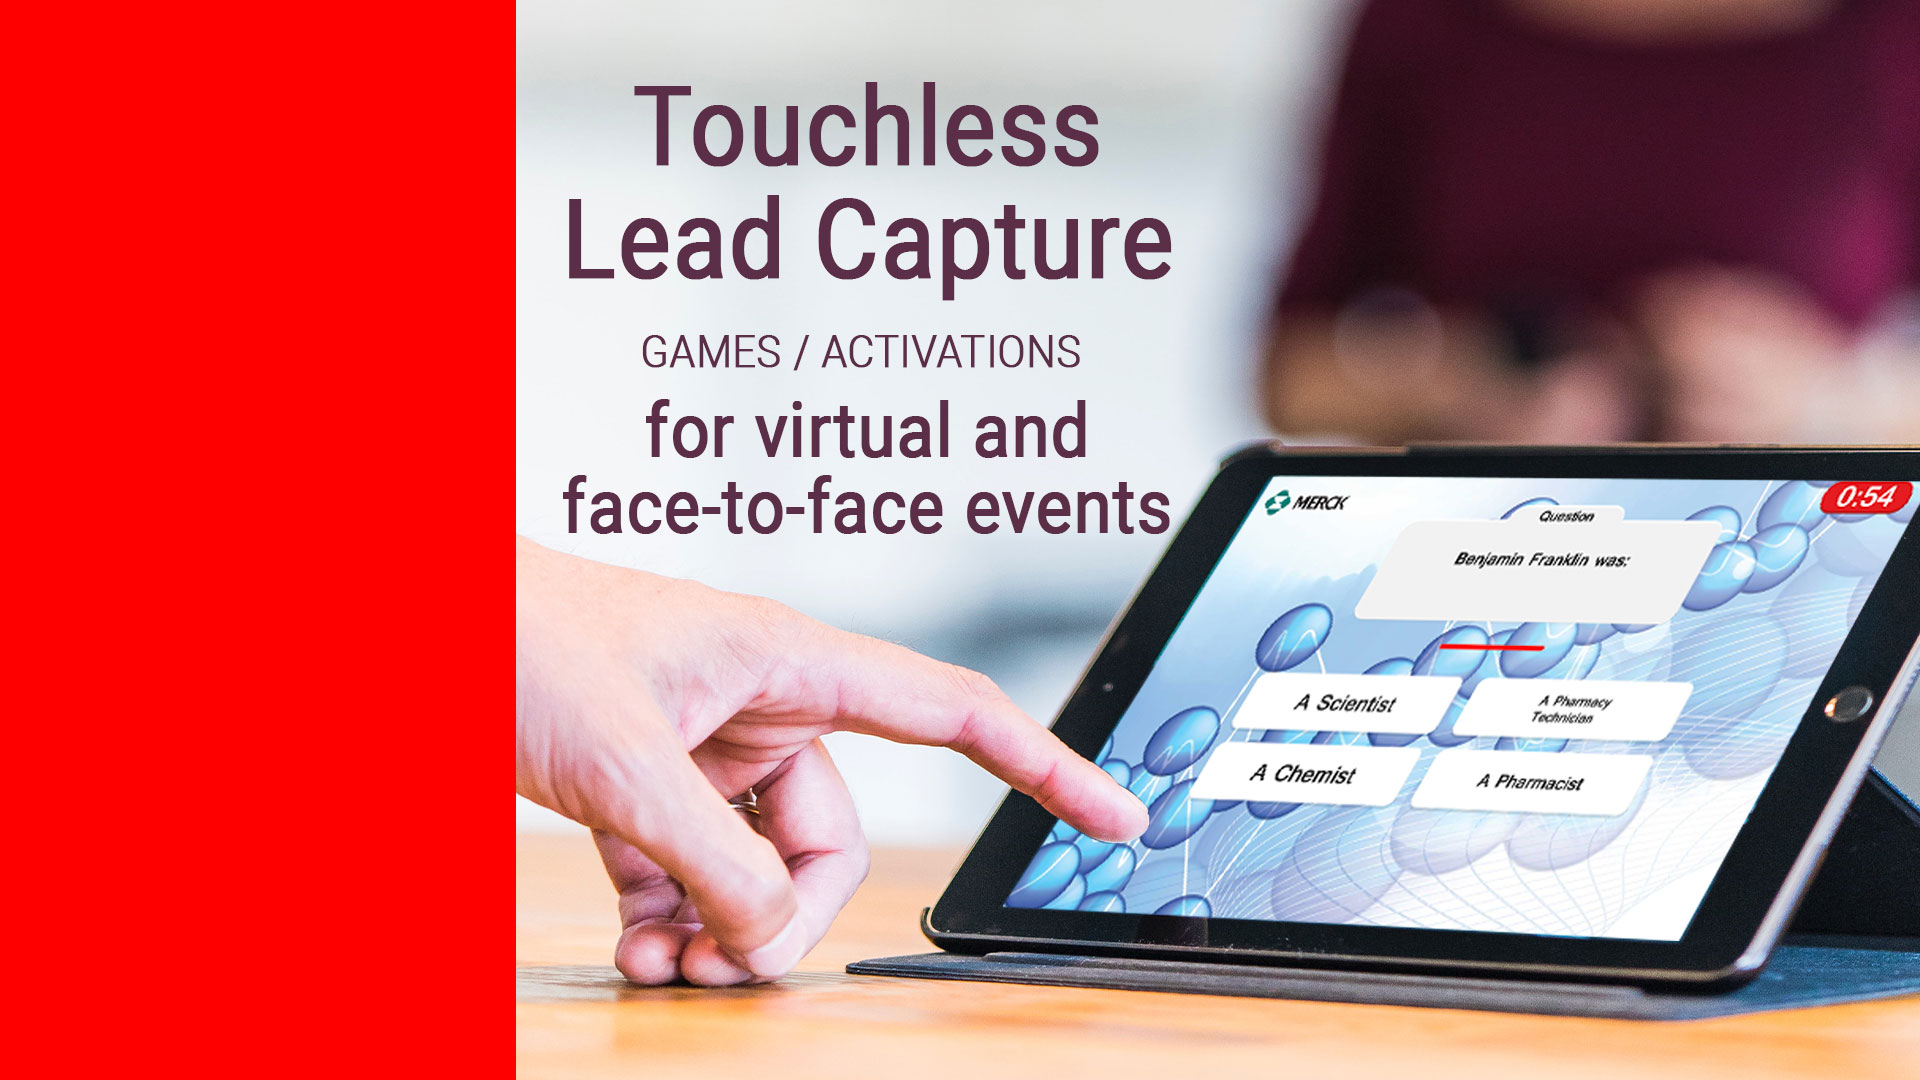 In response to the need for touchless exhibition experiences and with respect for social distancing, Captello has launched a variety of new interactive game experiences enabling exhibitors to address the health and safety concerns of virtual and live booth visitors while increasing engagement with products, brands and solutions.